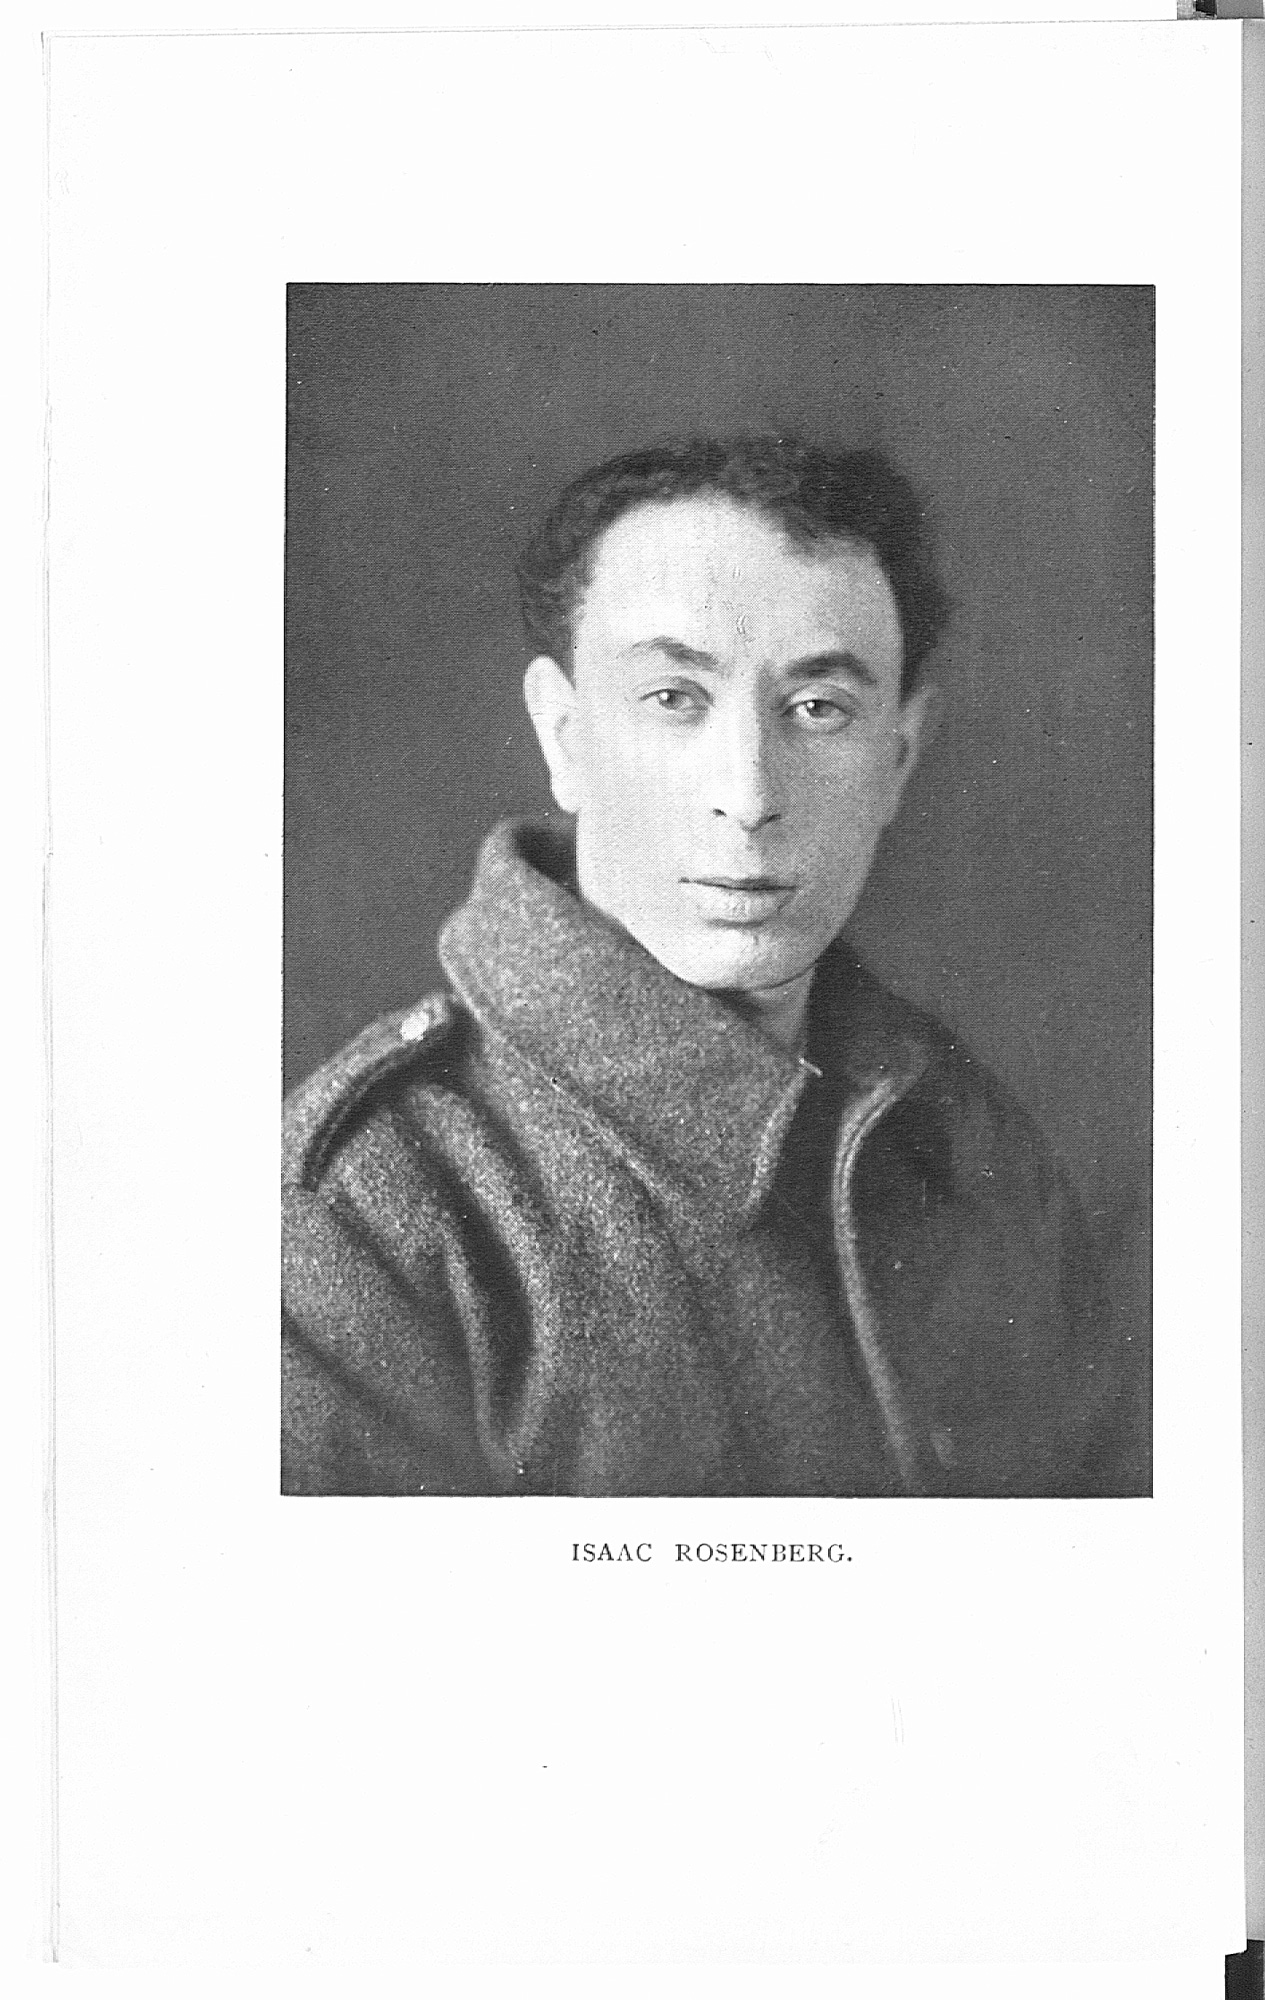 Photograph of Isaac Rosenberg from 'Poems' (1922). Rosenberg was killed in action on 1 April 1918.